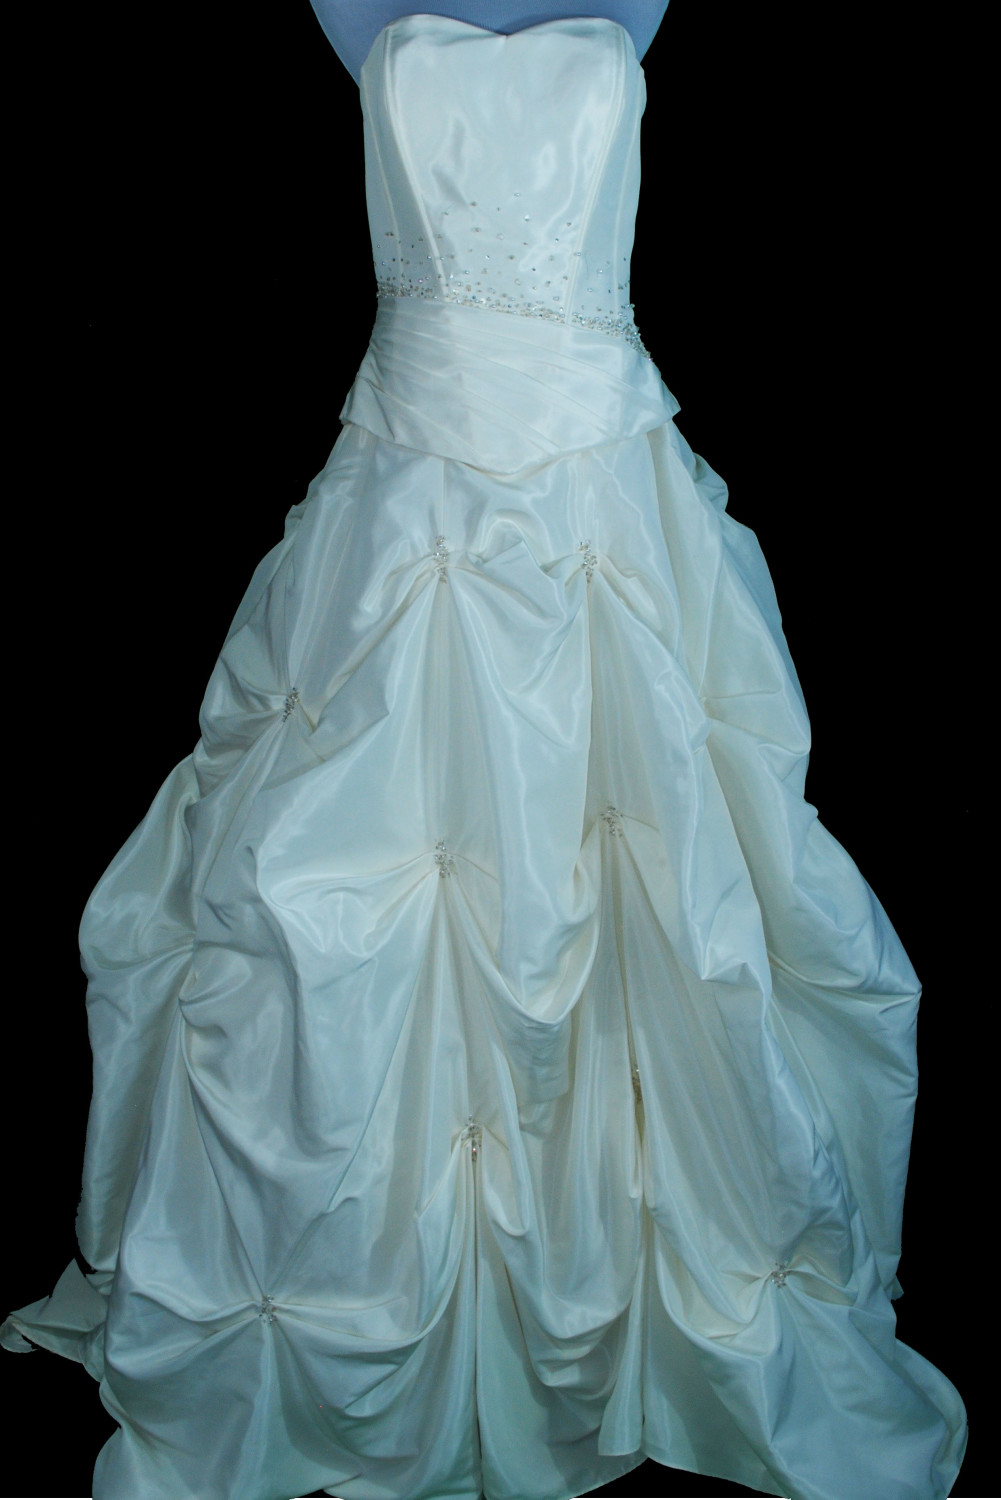 Eden Bridals – Original Retail: $762, CWS: $375